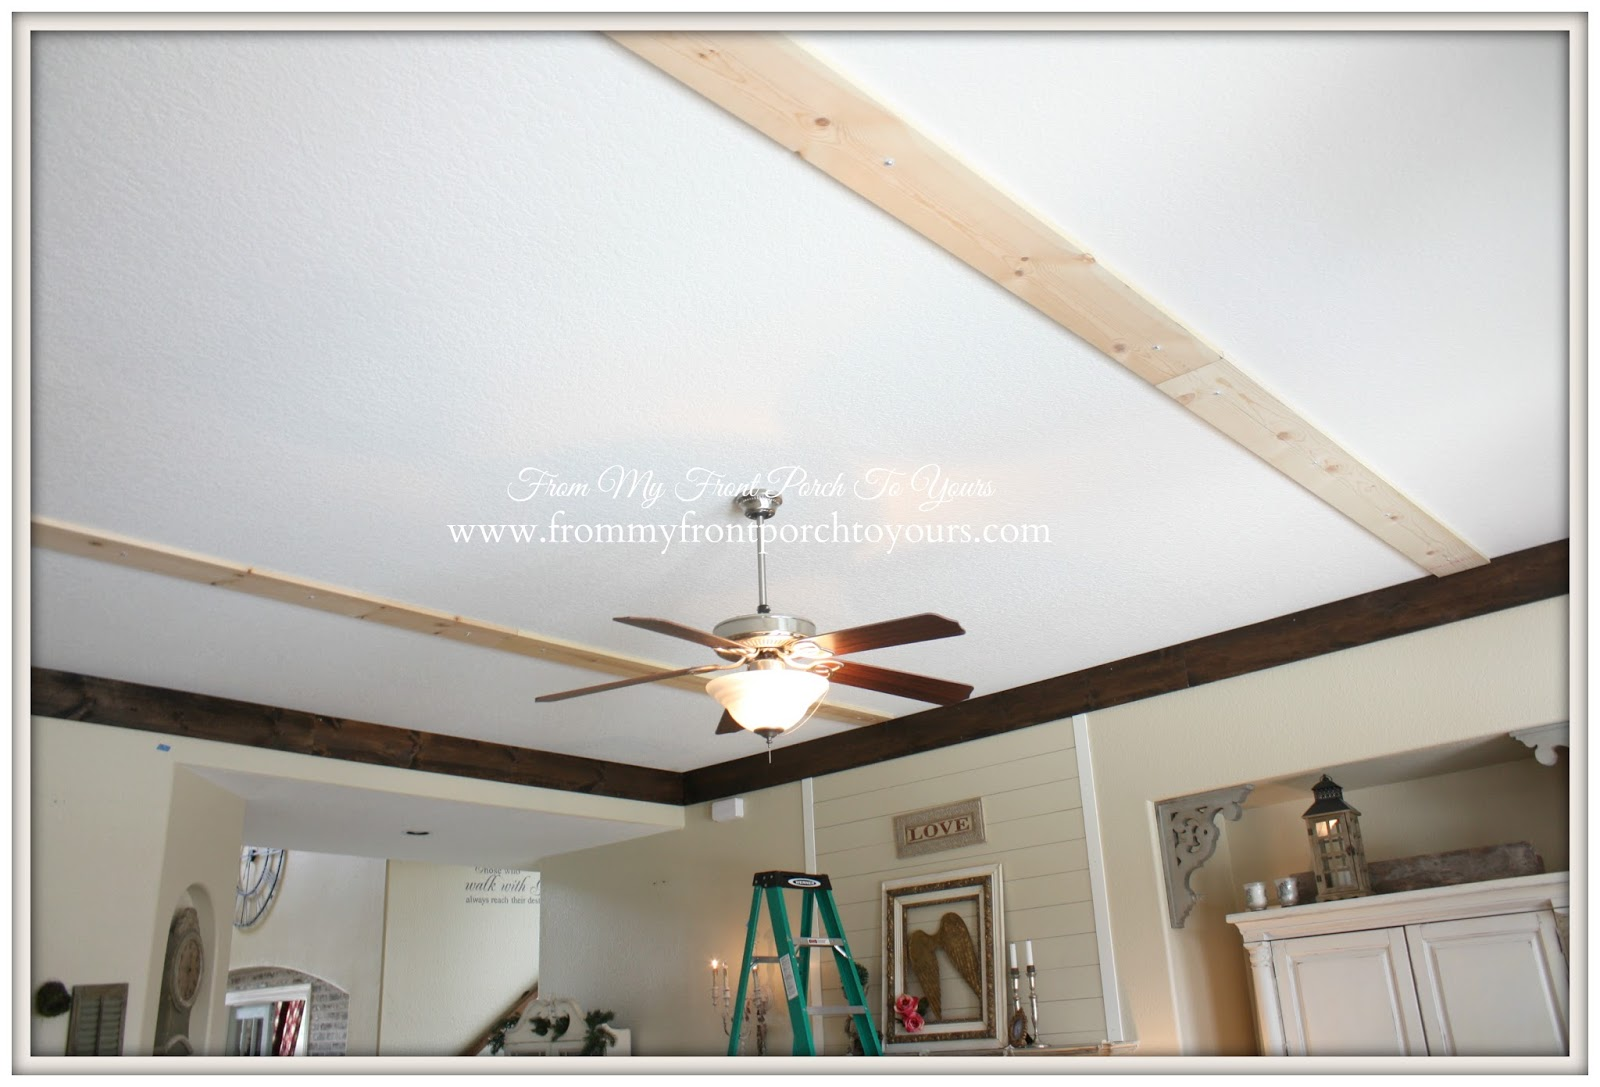 Easy install of 1x8 pine boards for living room wood beams at From My Front Porch To Yours.